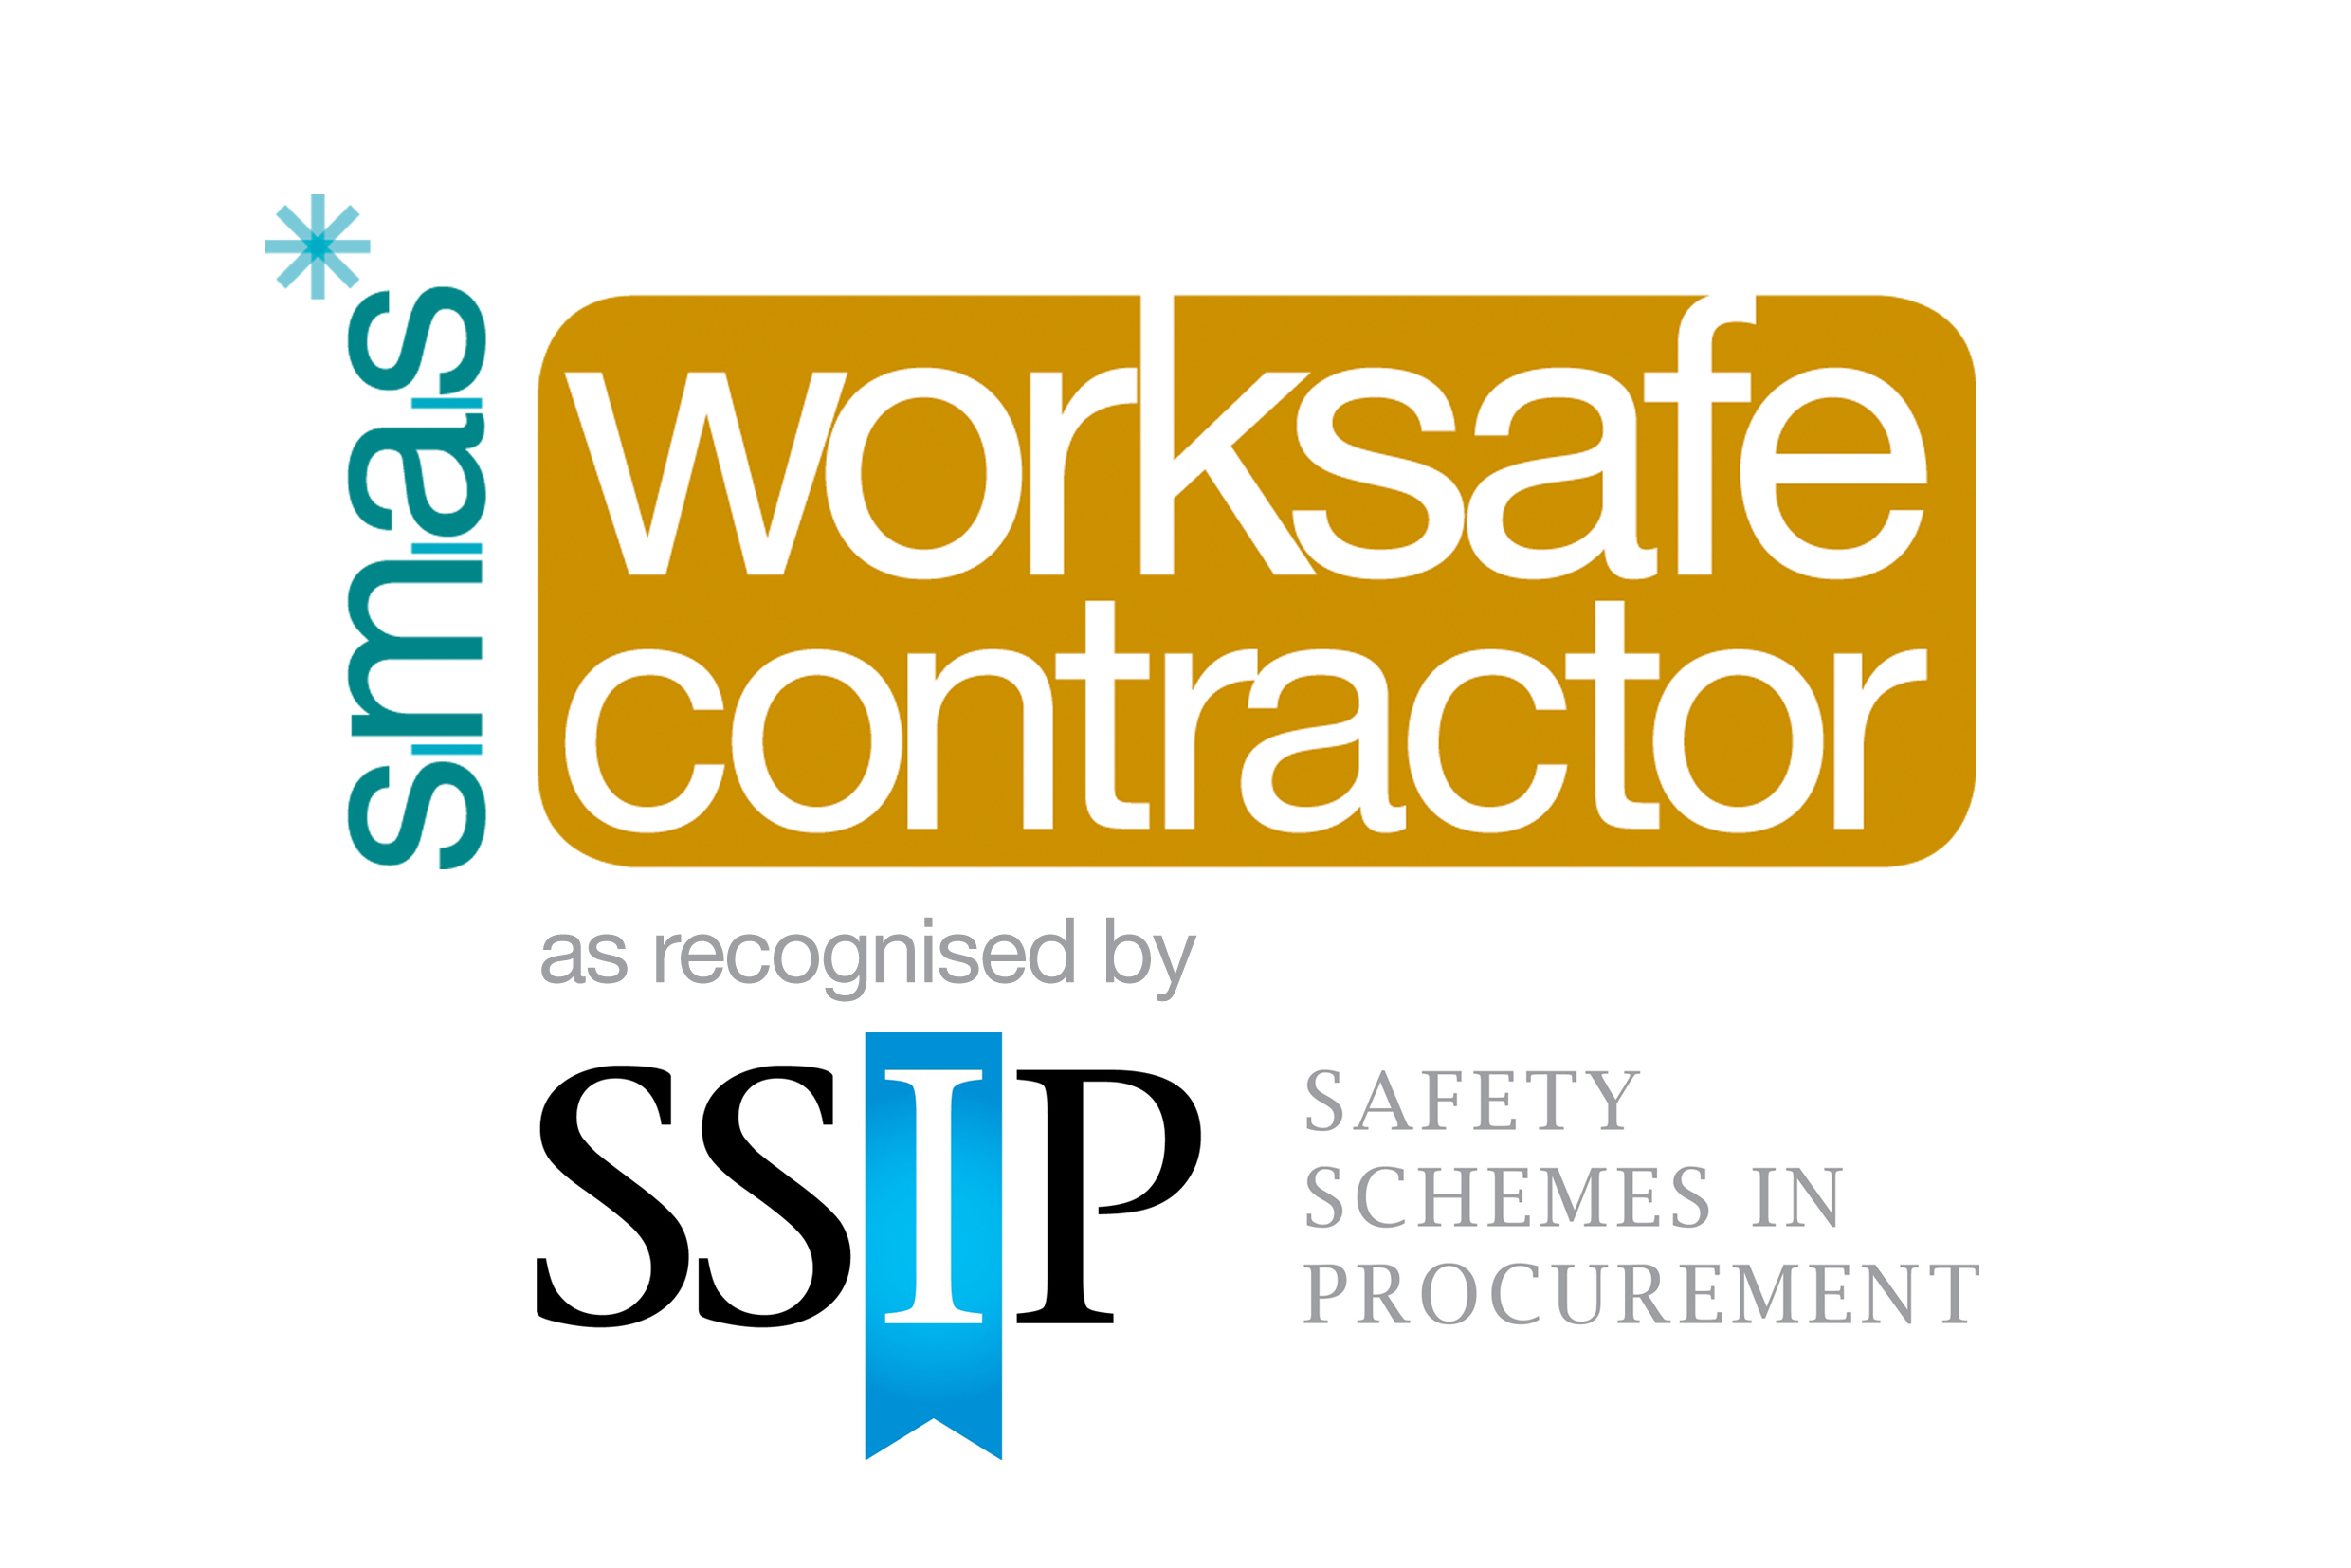 20130627091147Worksafe20contractor20Logo20Portrait-Copy.jpg